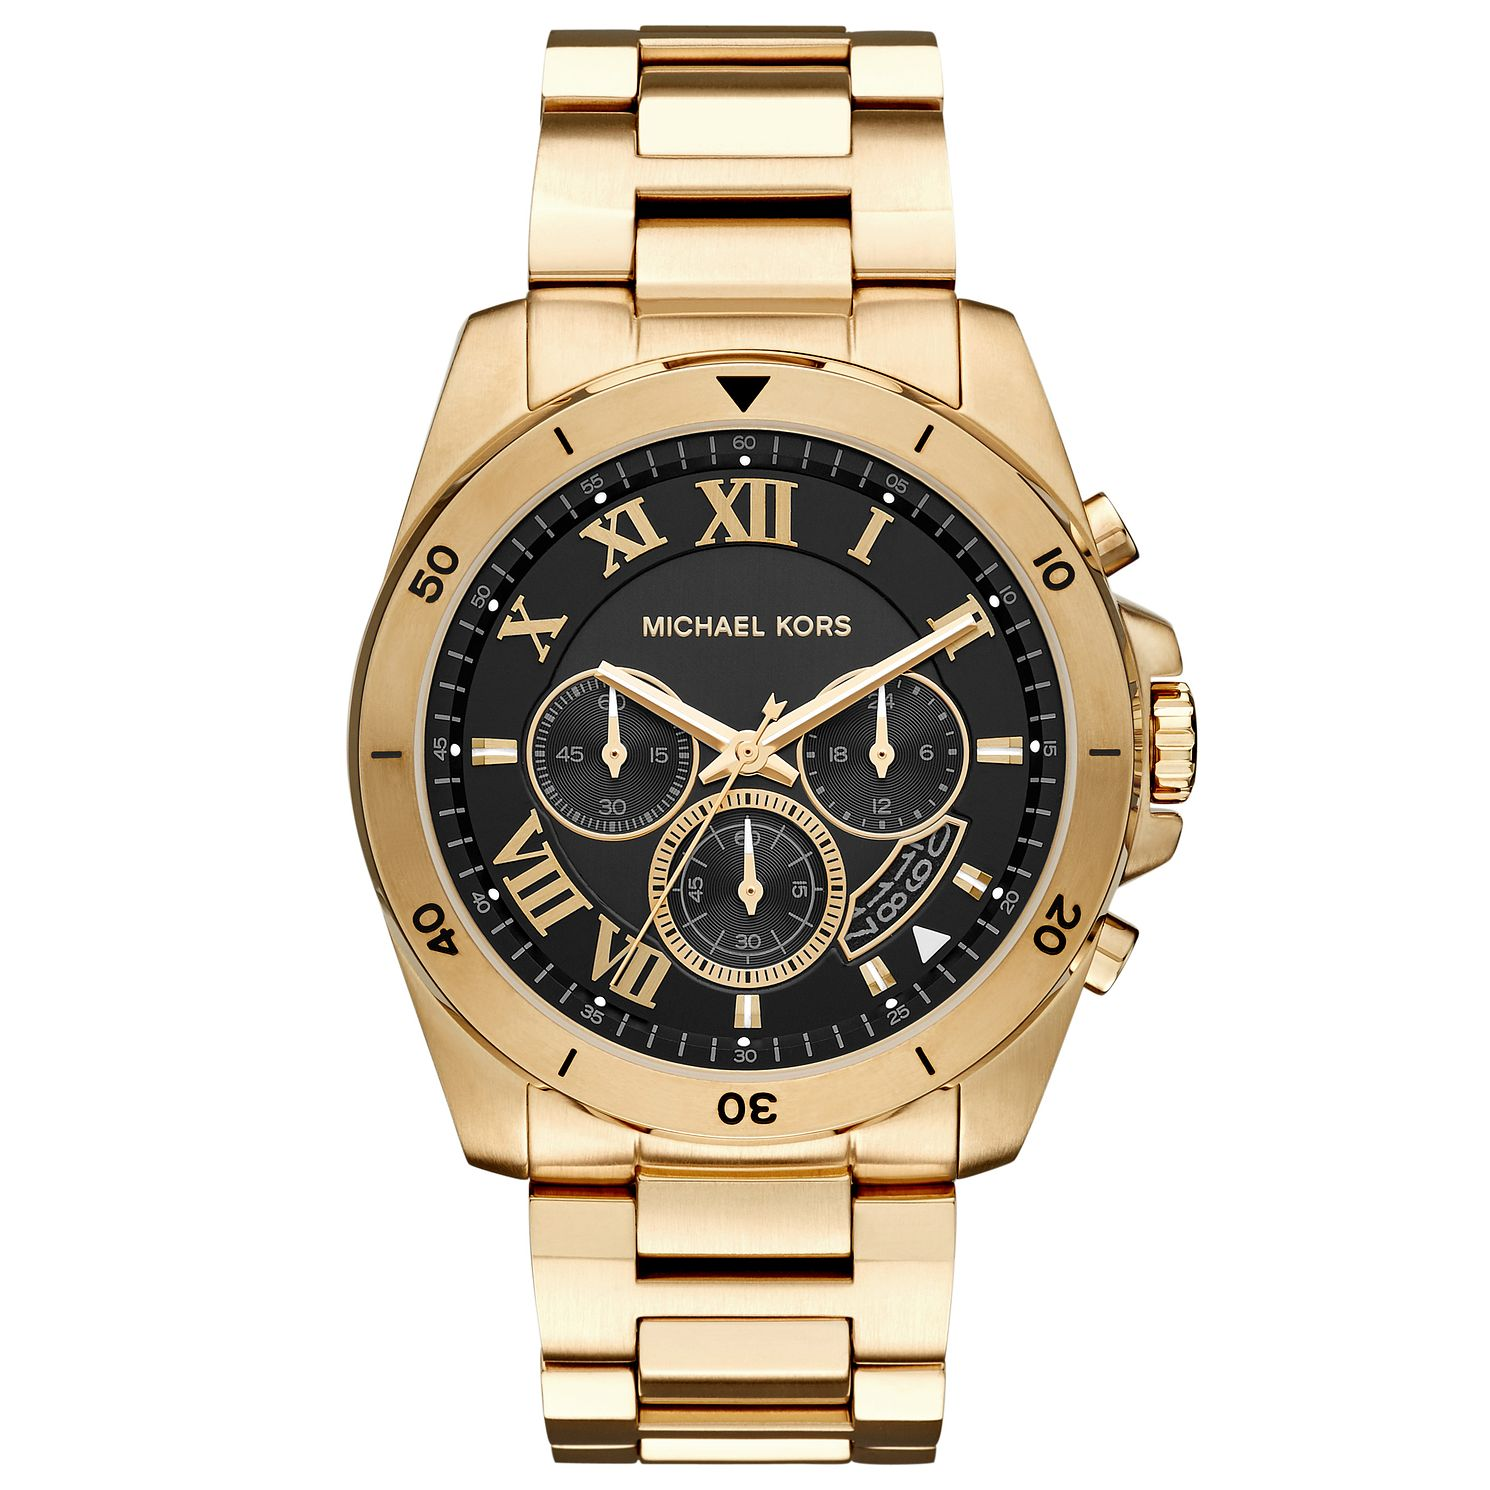 Michael Kors Men's Gold Plated Bracelet Watch - Product number 4904427